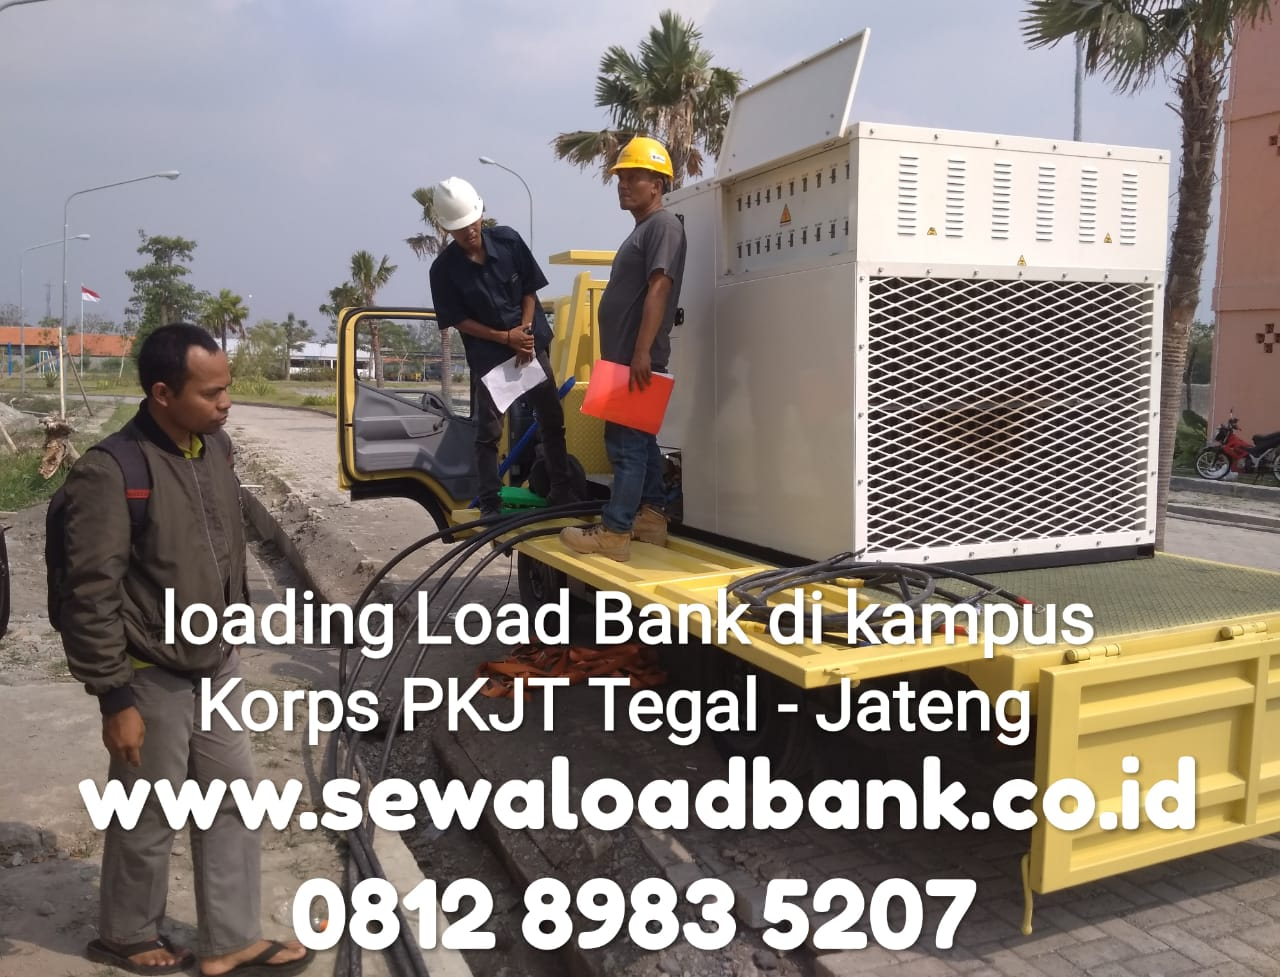 sewa load bank 200 kw www.sewaloadbank.co.id